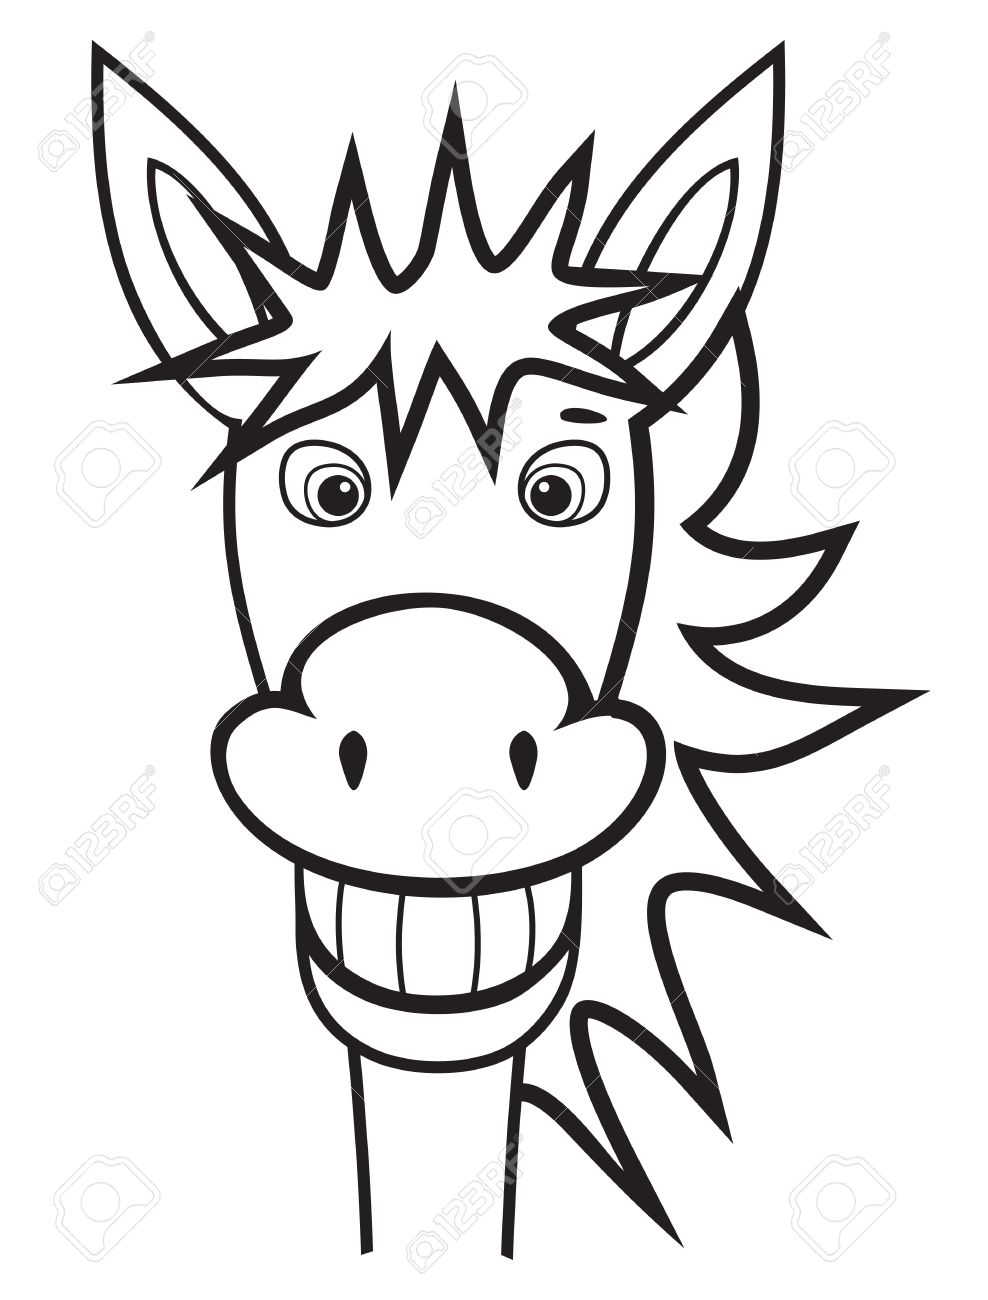 Donkey Face Coloring - Clipart Library •